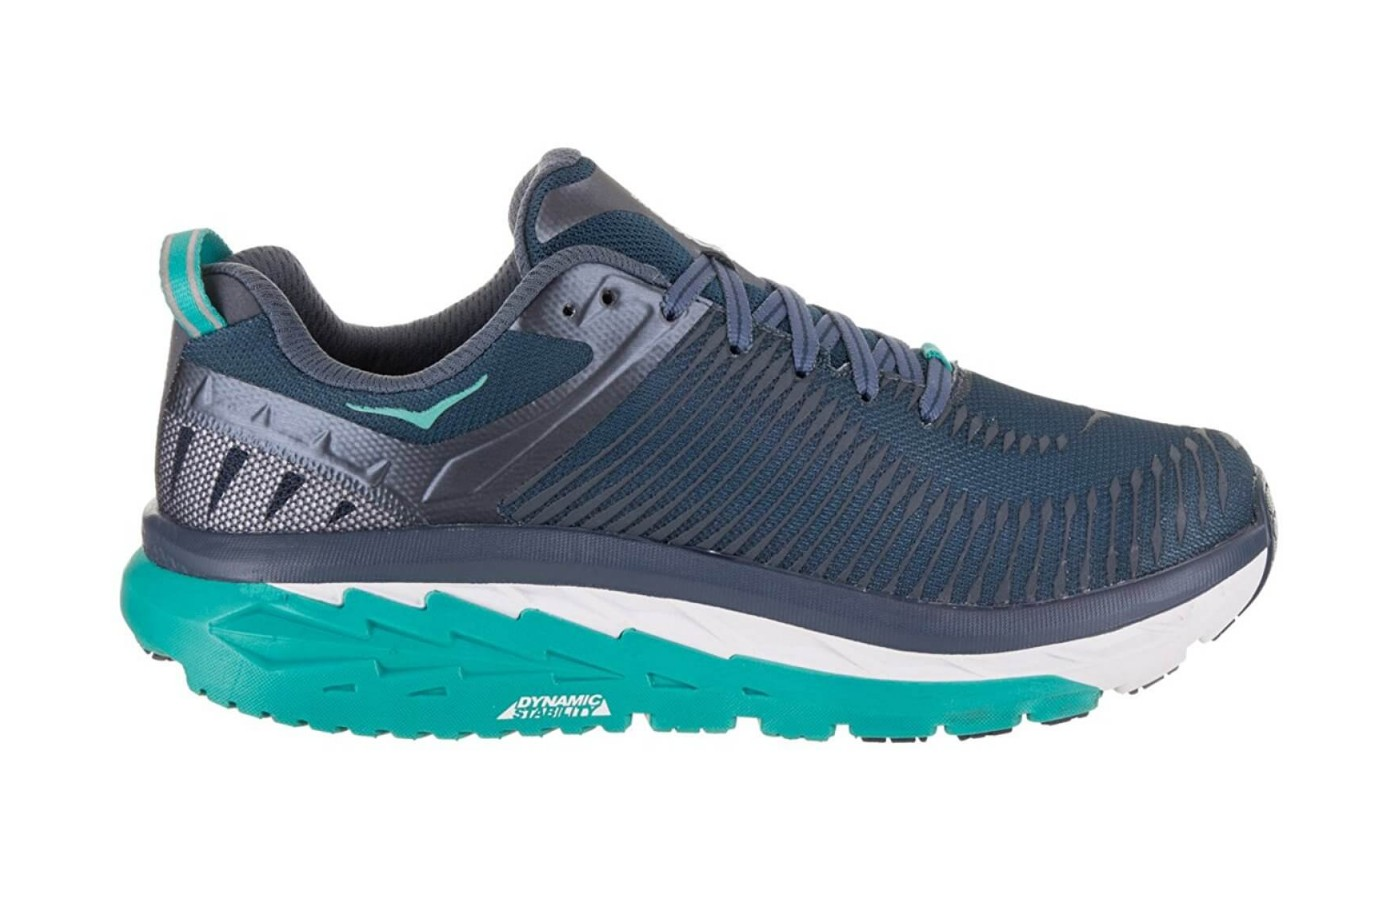 The Hoka One One Arahi 2 features EVA midsole cushioning